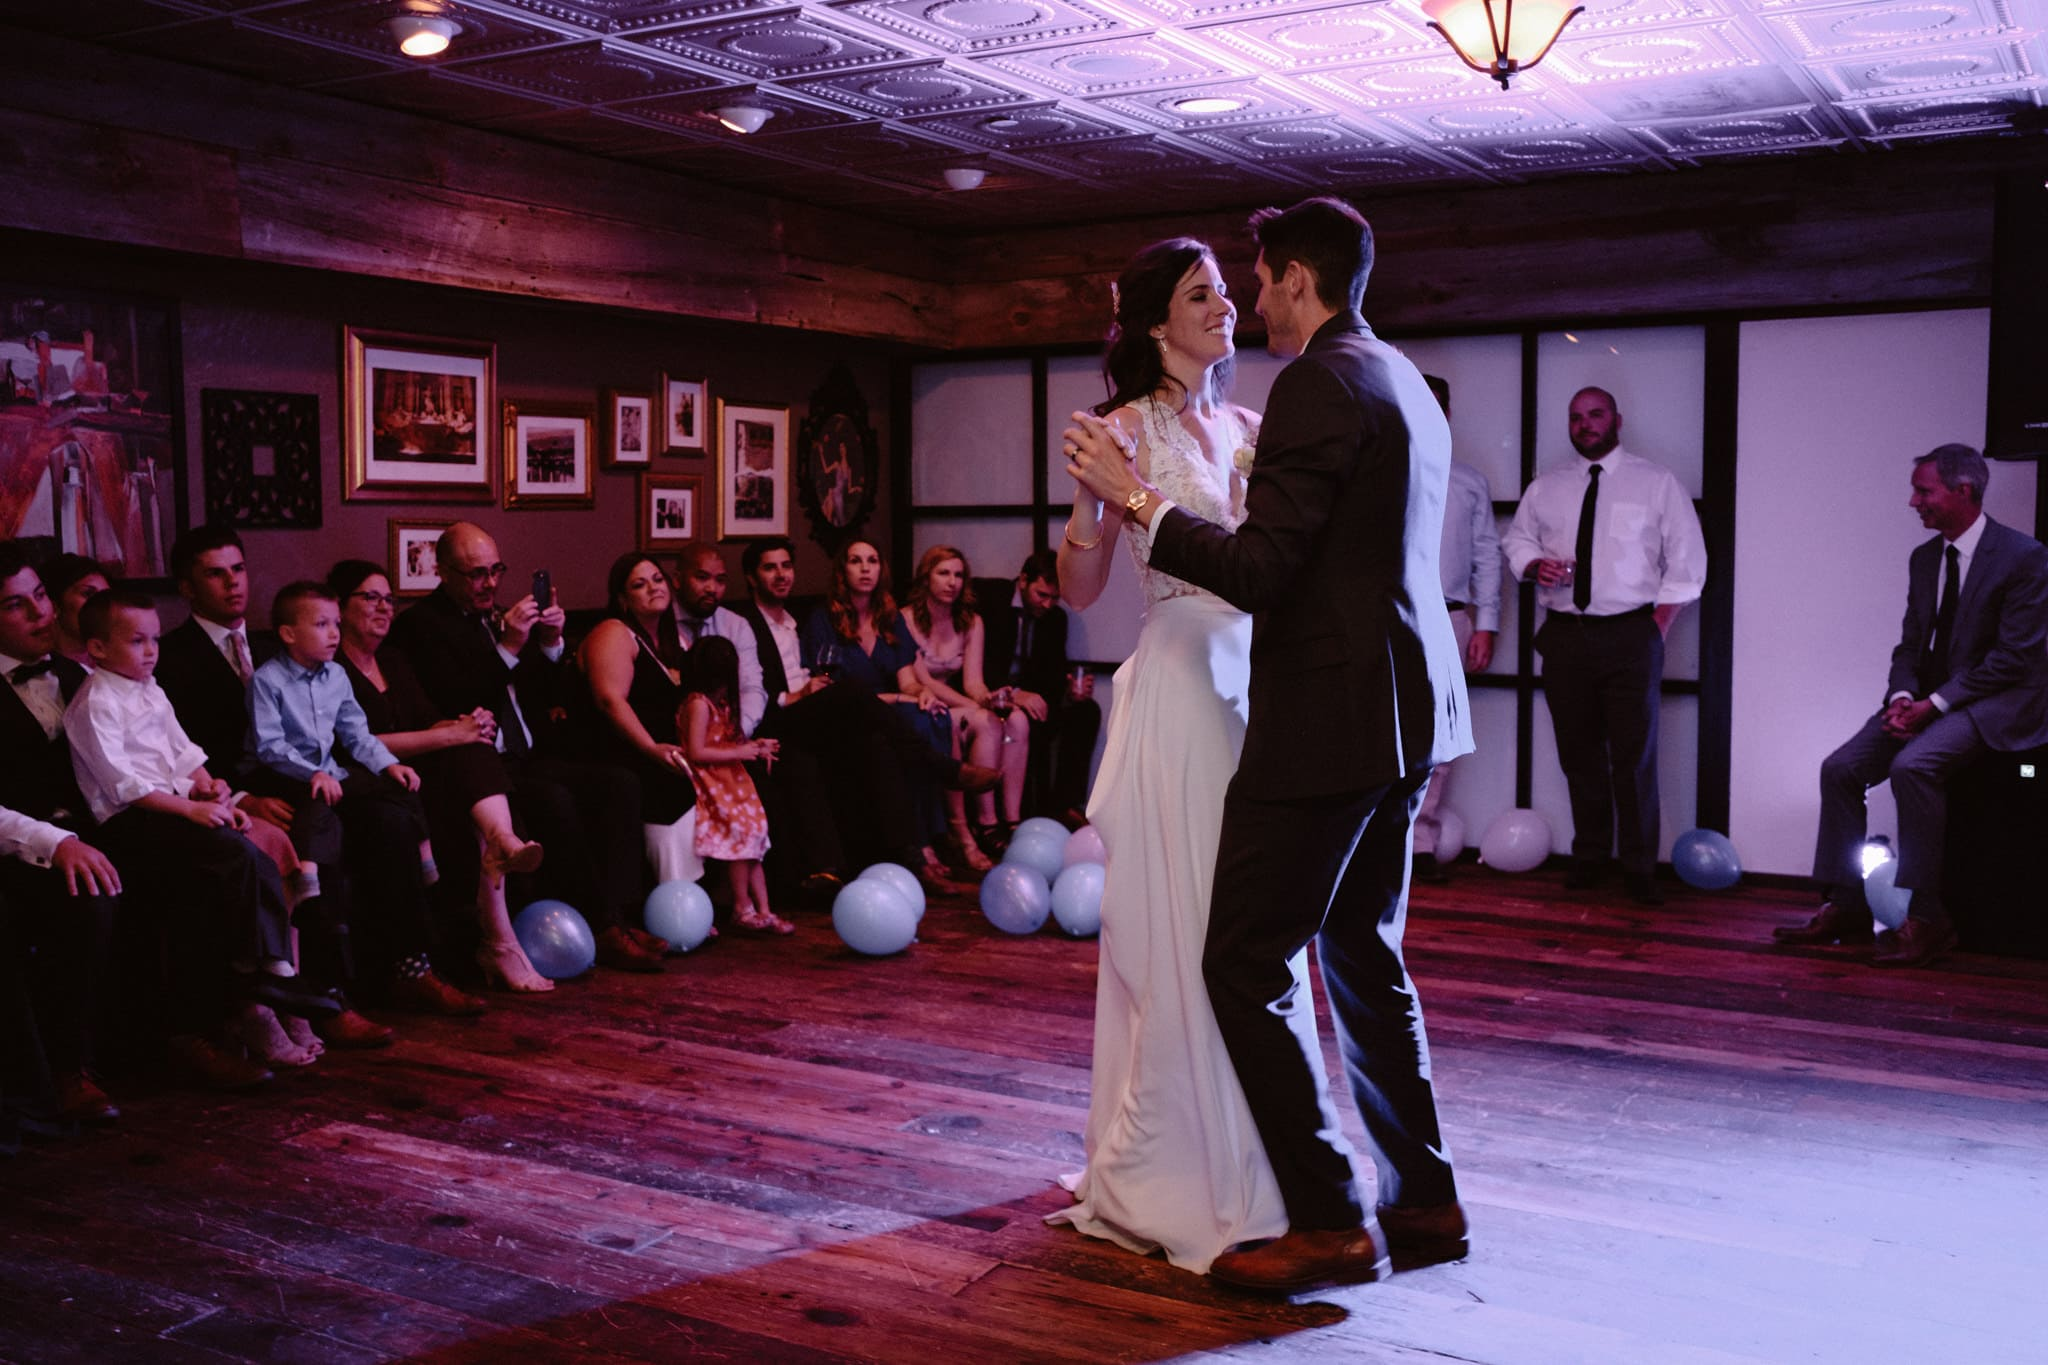 Bride and groom first dance at Sauce on the Maggie reception venue, Breckenridge wedding photographer